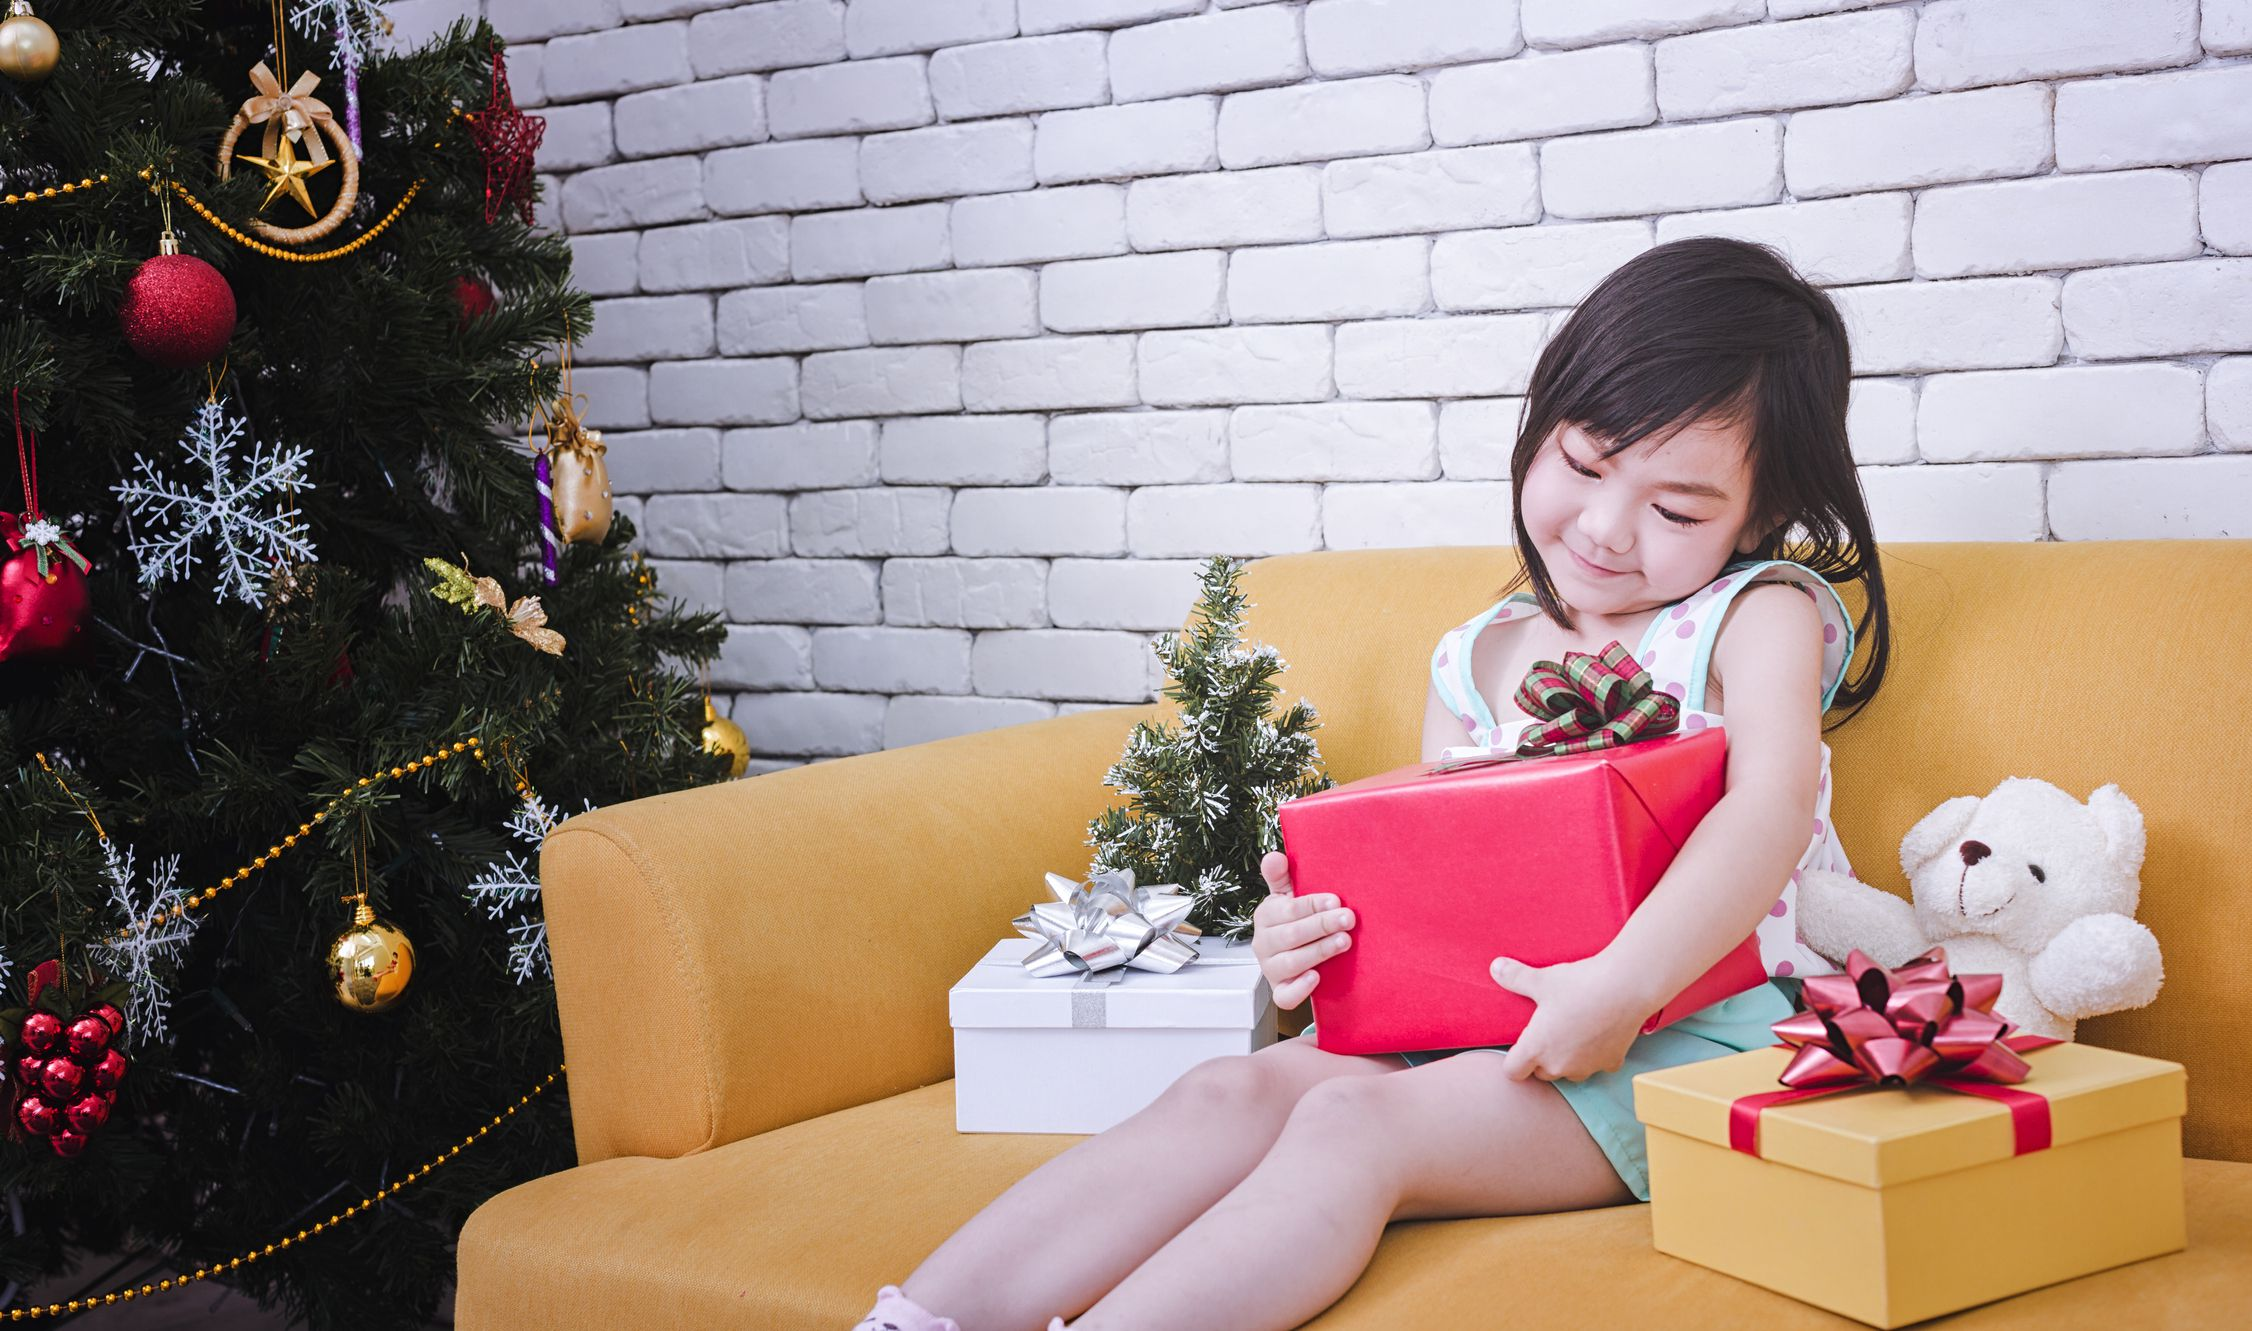 Top Christmas Gifts 2021 For Kids The 25 Best Christmas Toys For Kids Of 2021